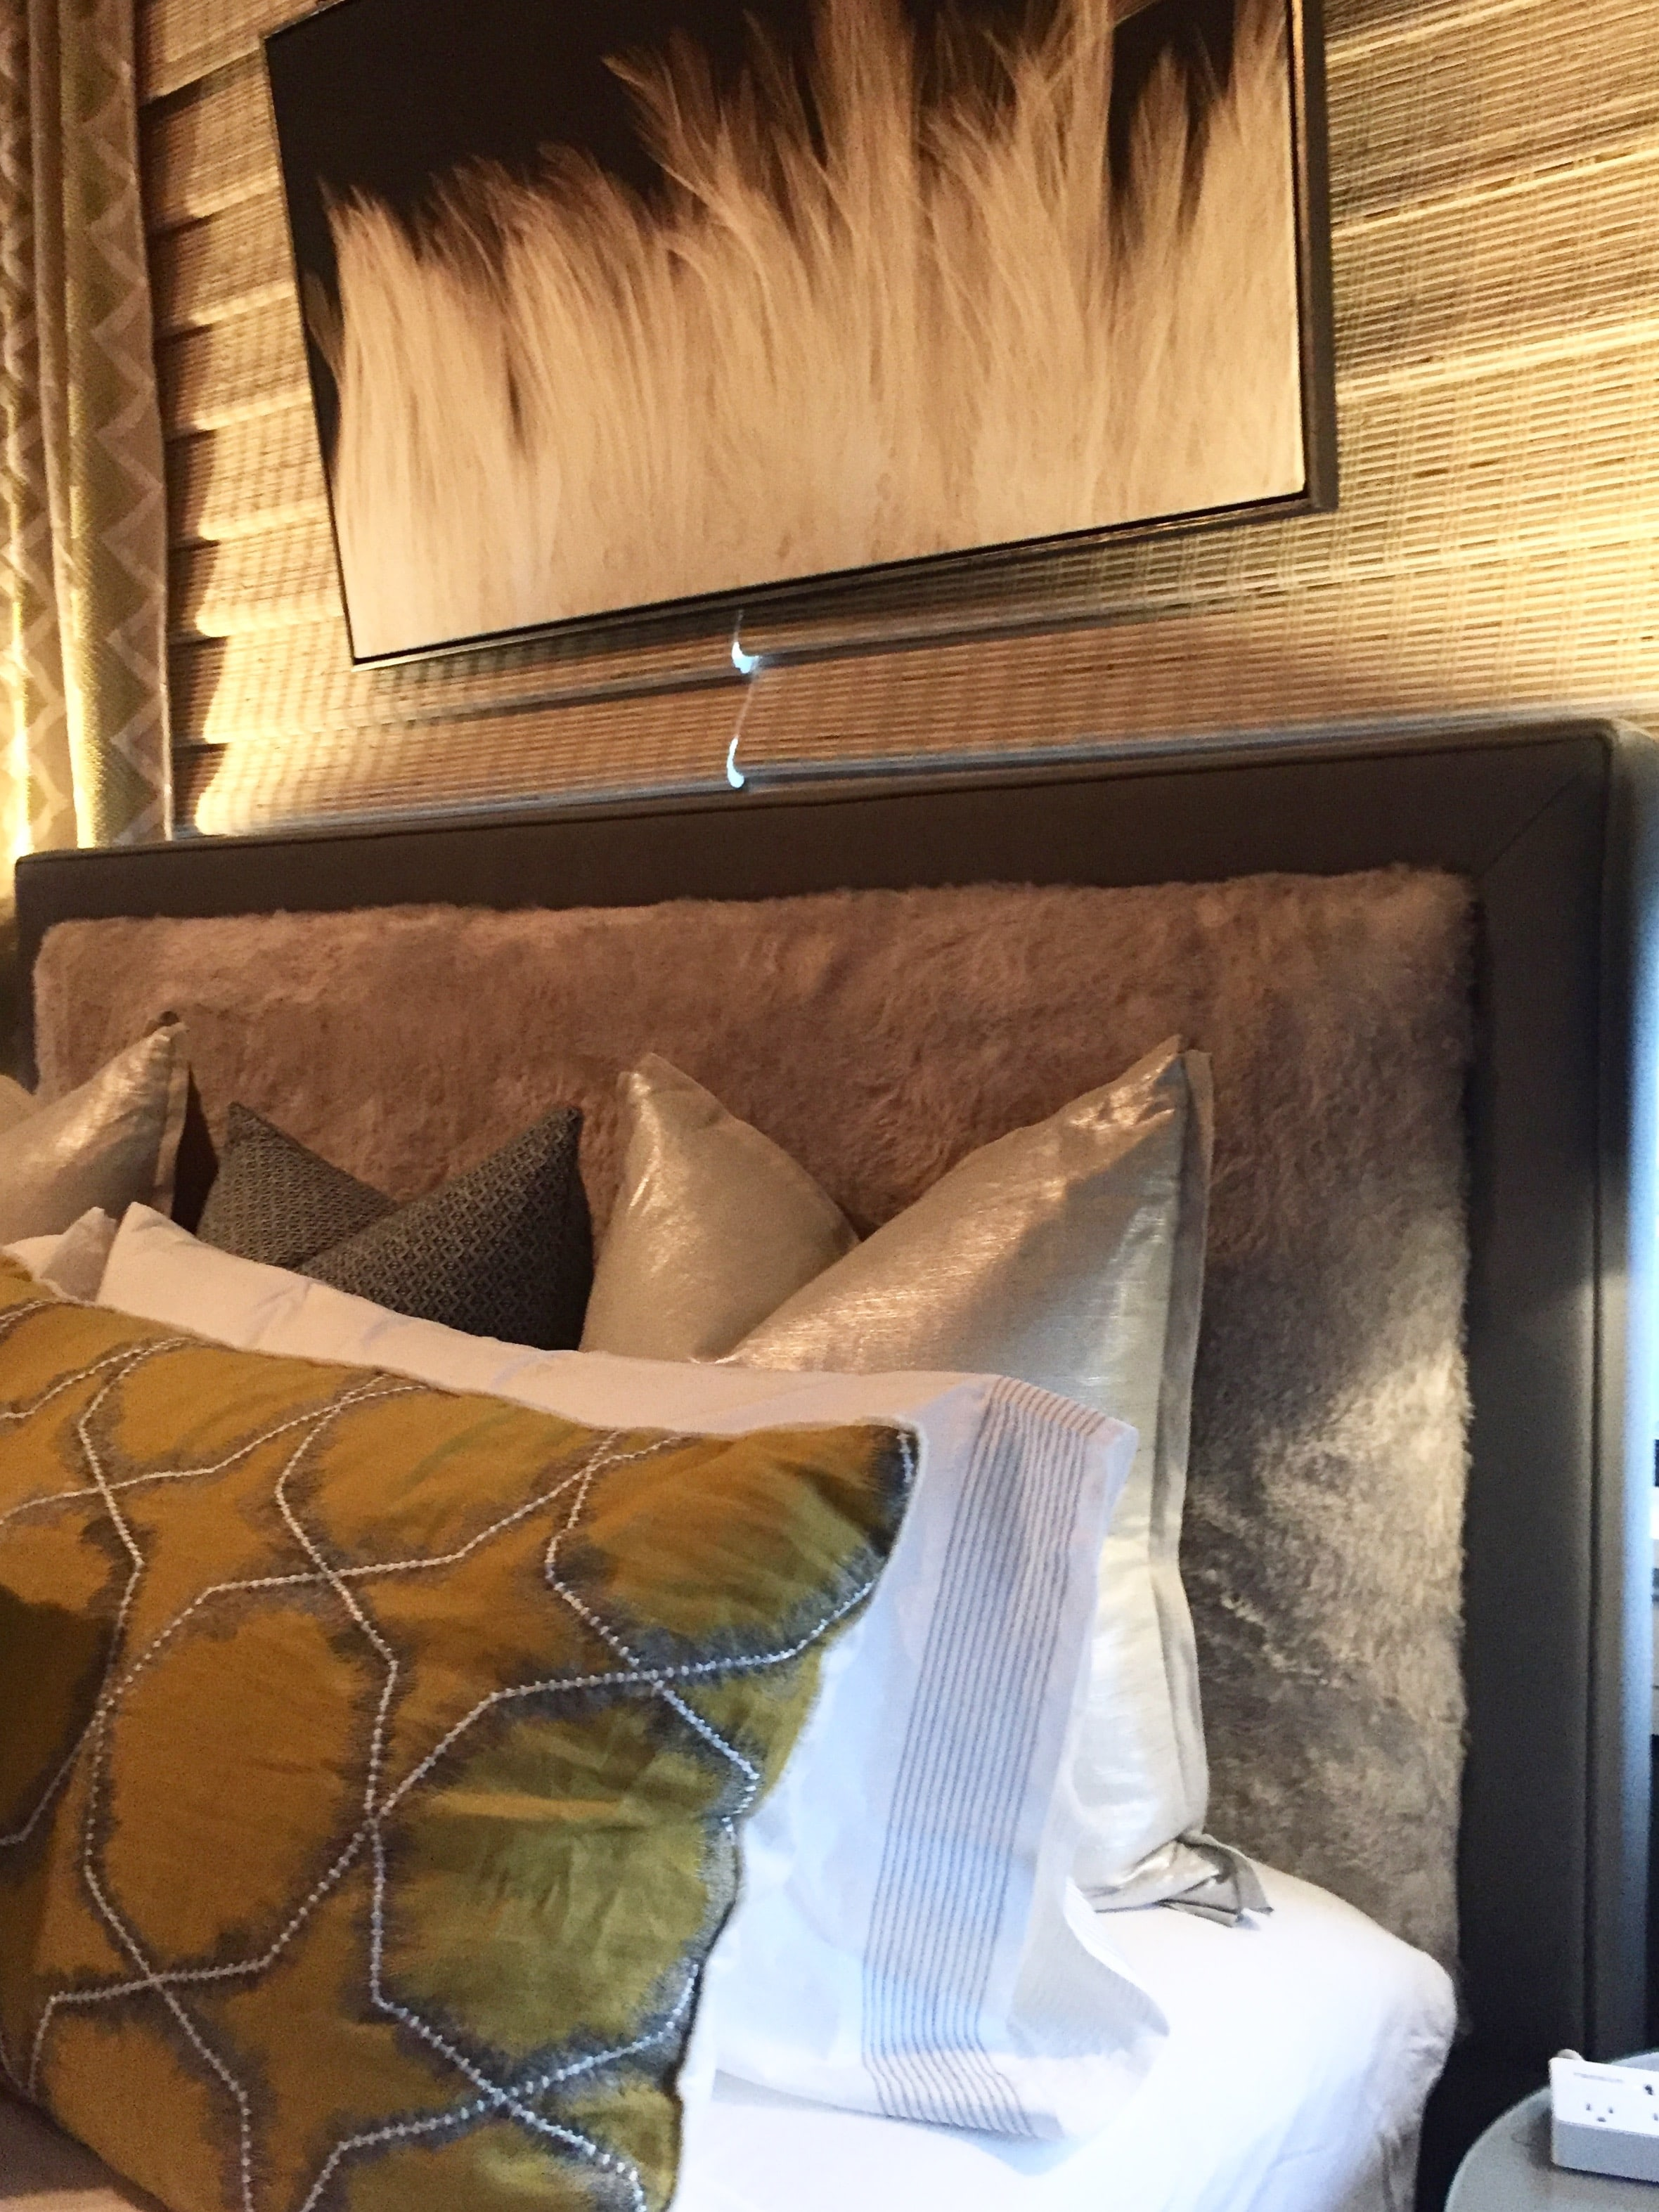 The sexy furry upholstered headboard in a room designed by Thom Felicia for Eastern Accents at the Pandora's Manor Bed & Breakfast showhouse, which was being held in High Point concurrent to the furniture expo.